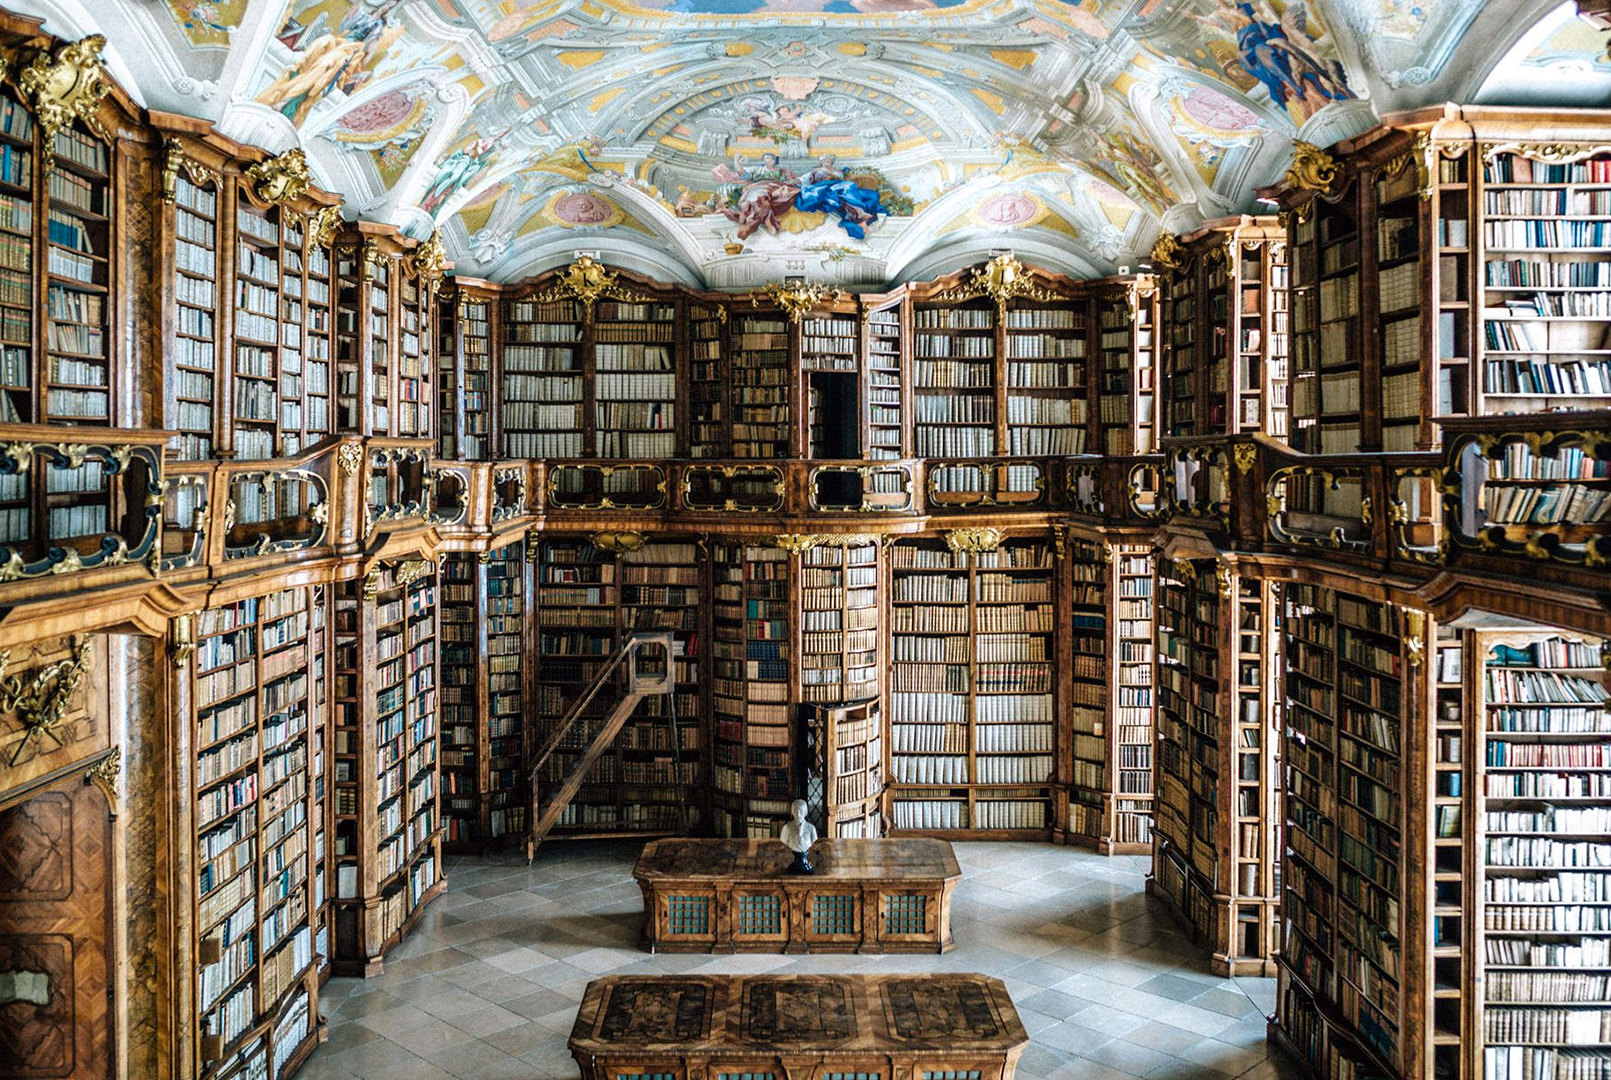 St Florian Abbey Library